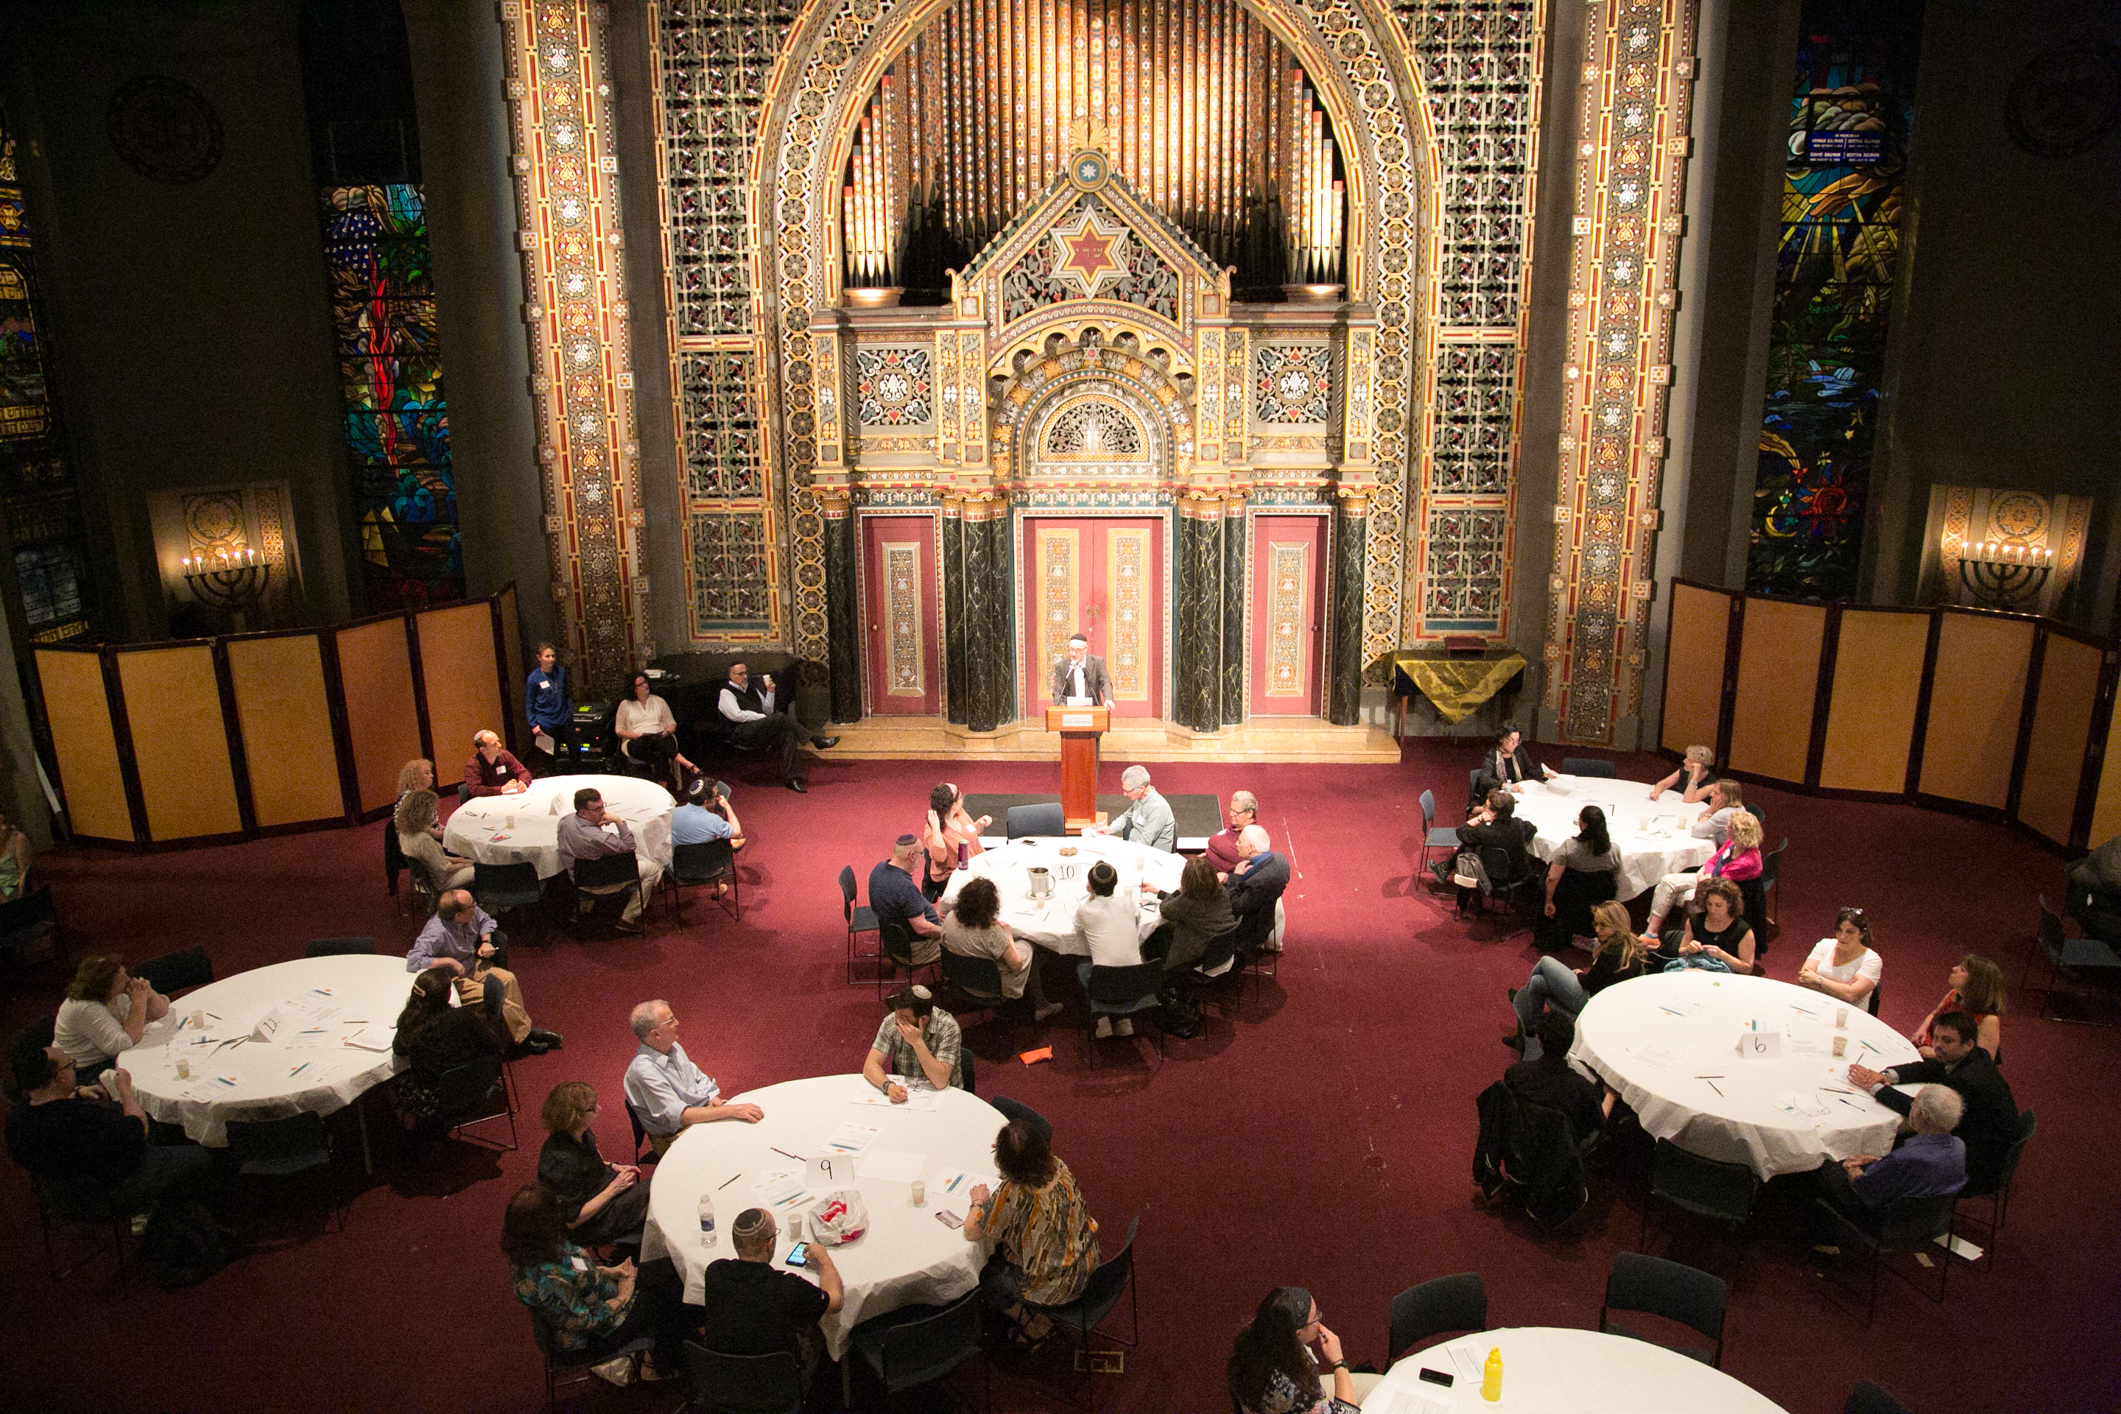 Synagogue B'nai Jeshurun congregants discussing interfaith marriage in the synagogue on May 17, 2017.